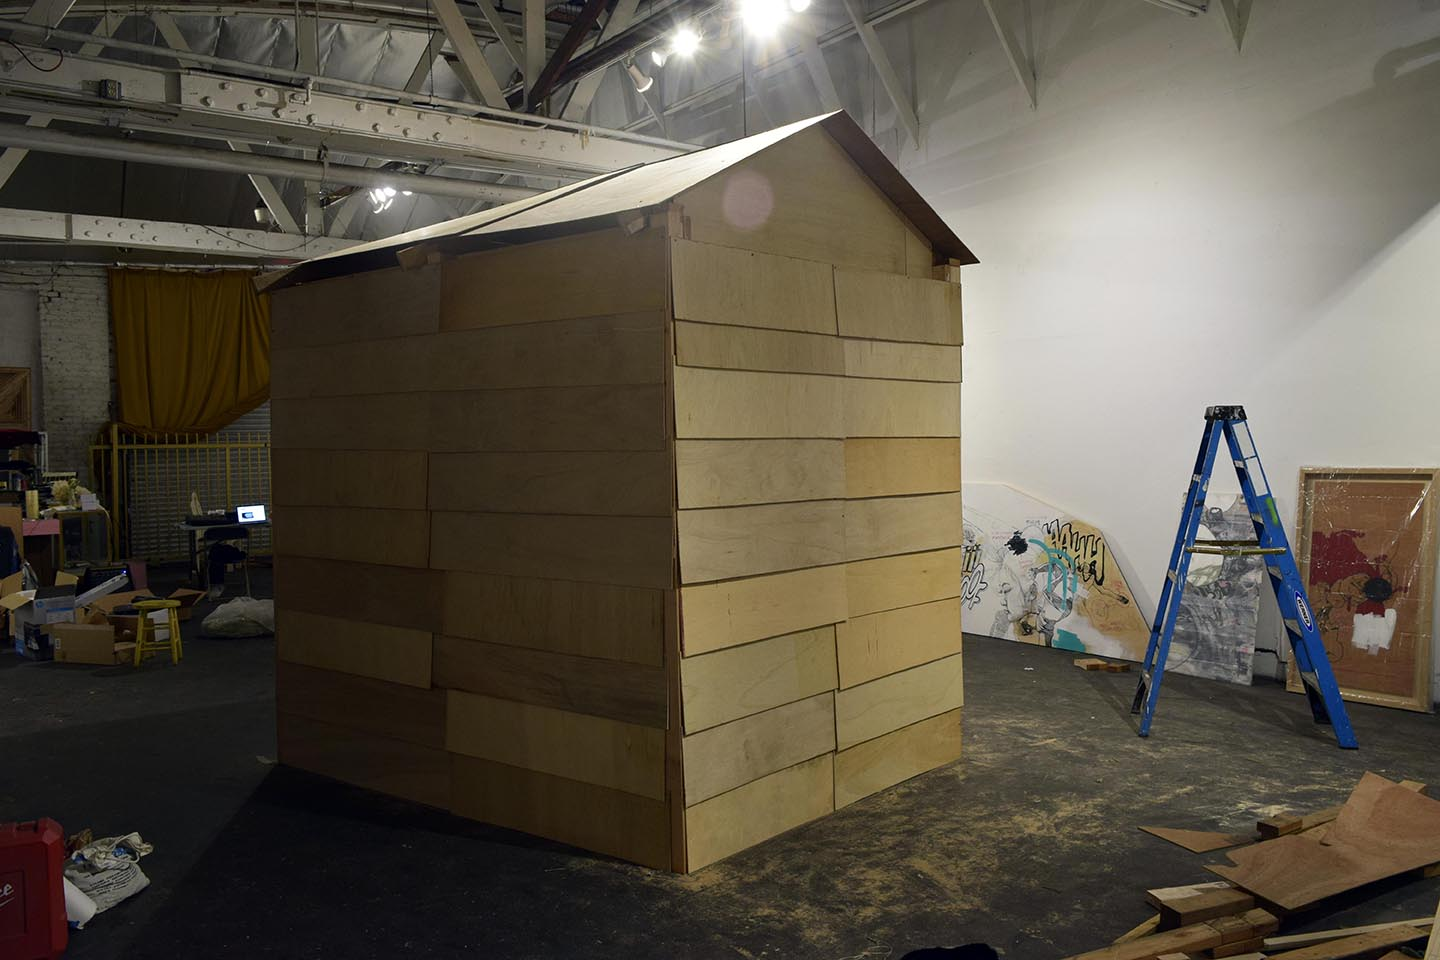 We Built a damn house in the gallery that we then turned into a damn temple damnit. Success.